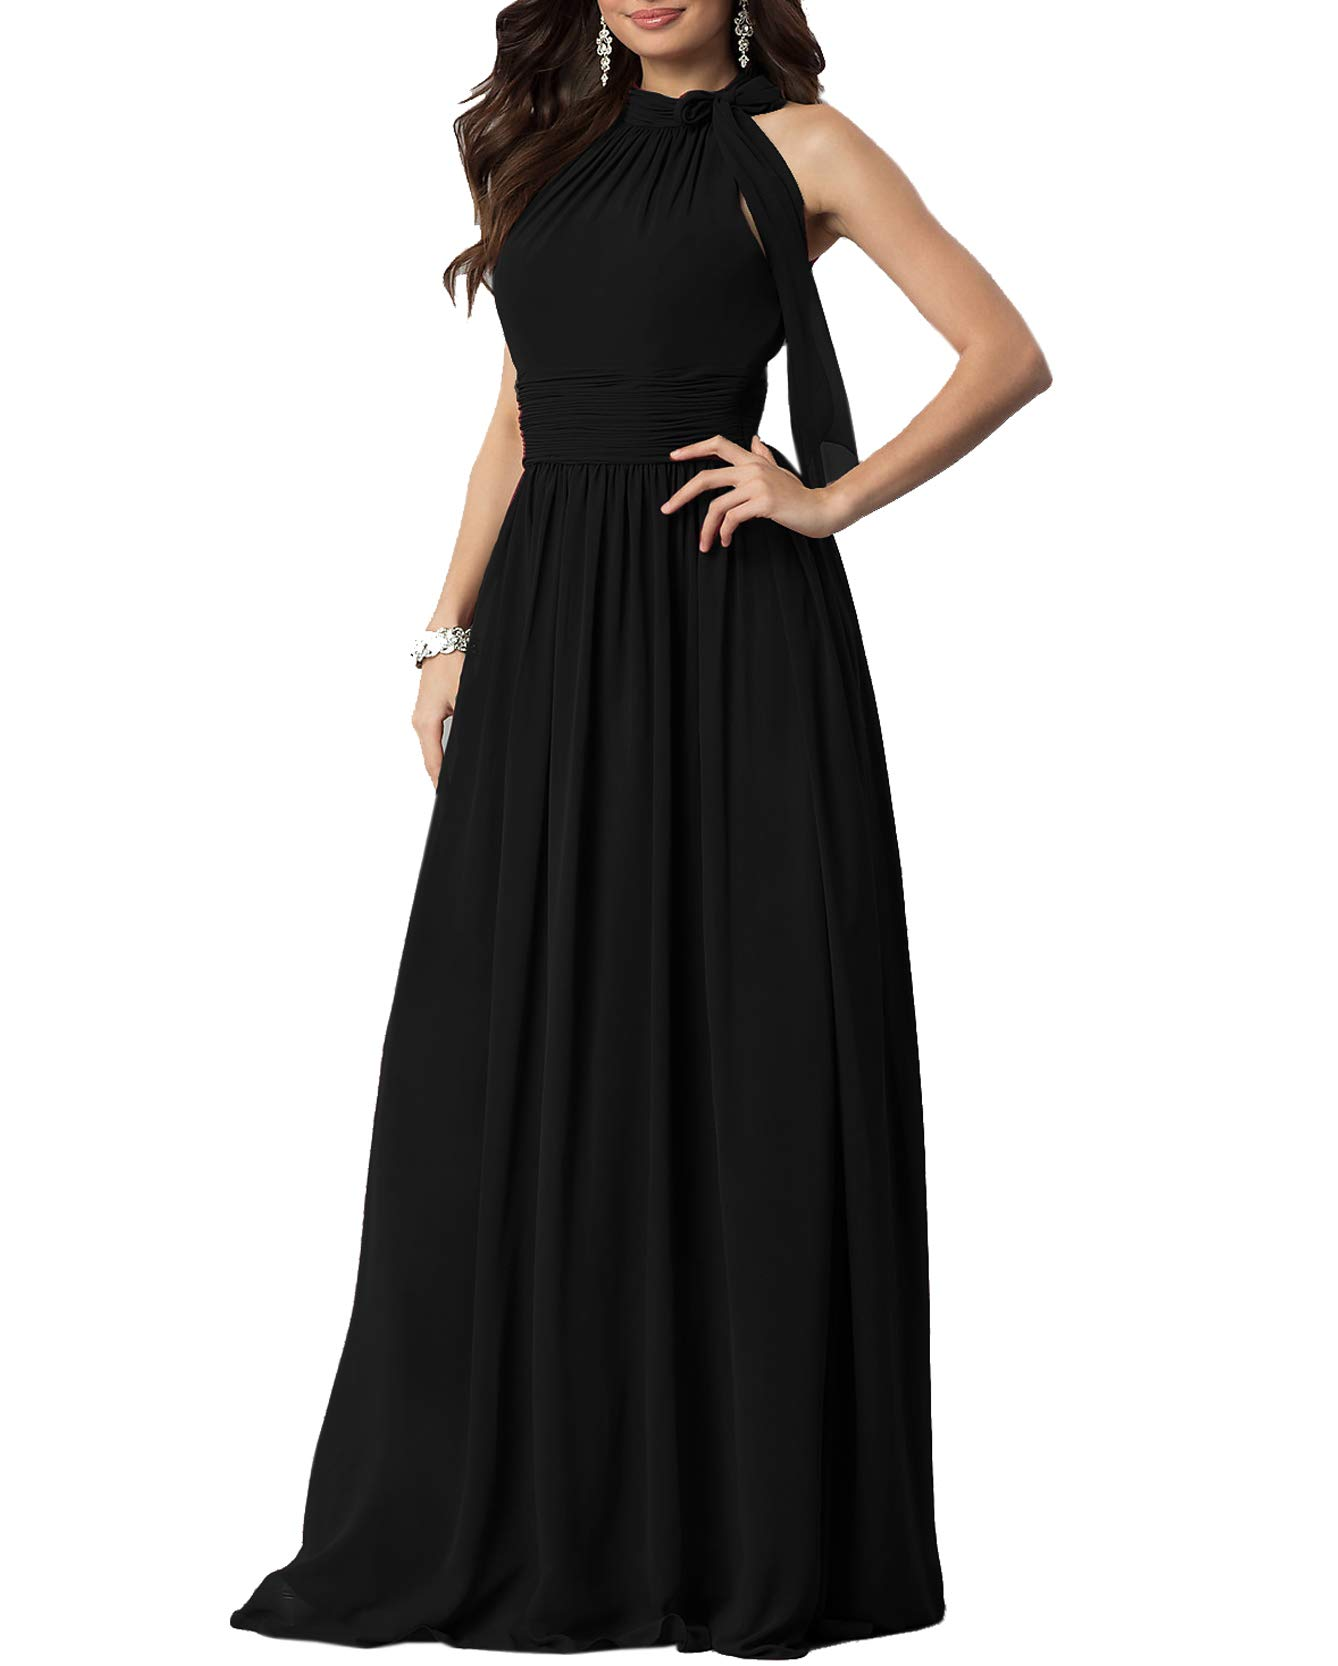 Goddess Blue Sweetheart Neckline Knee Length Ruched Cap Sleeve Dress Party